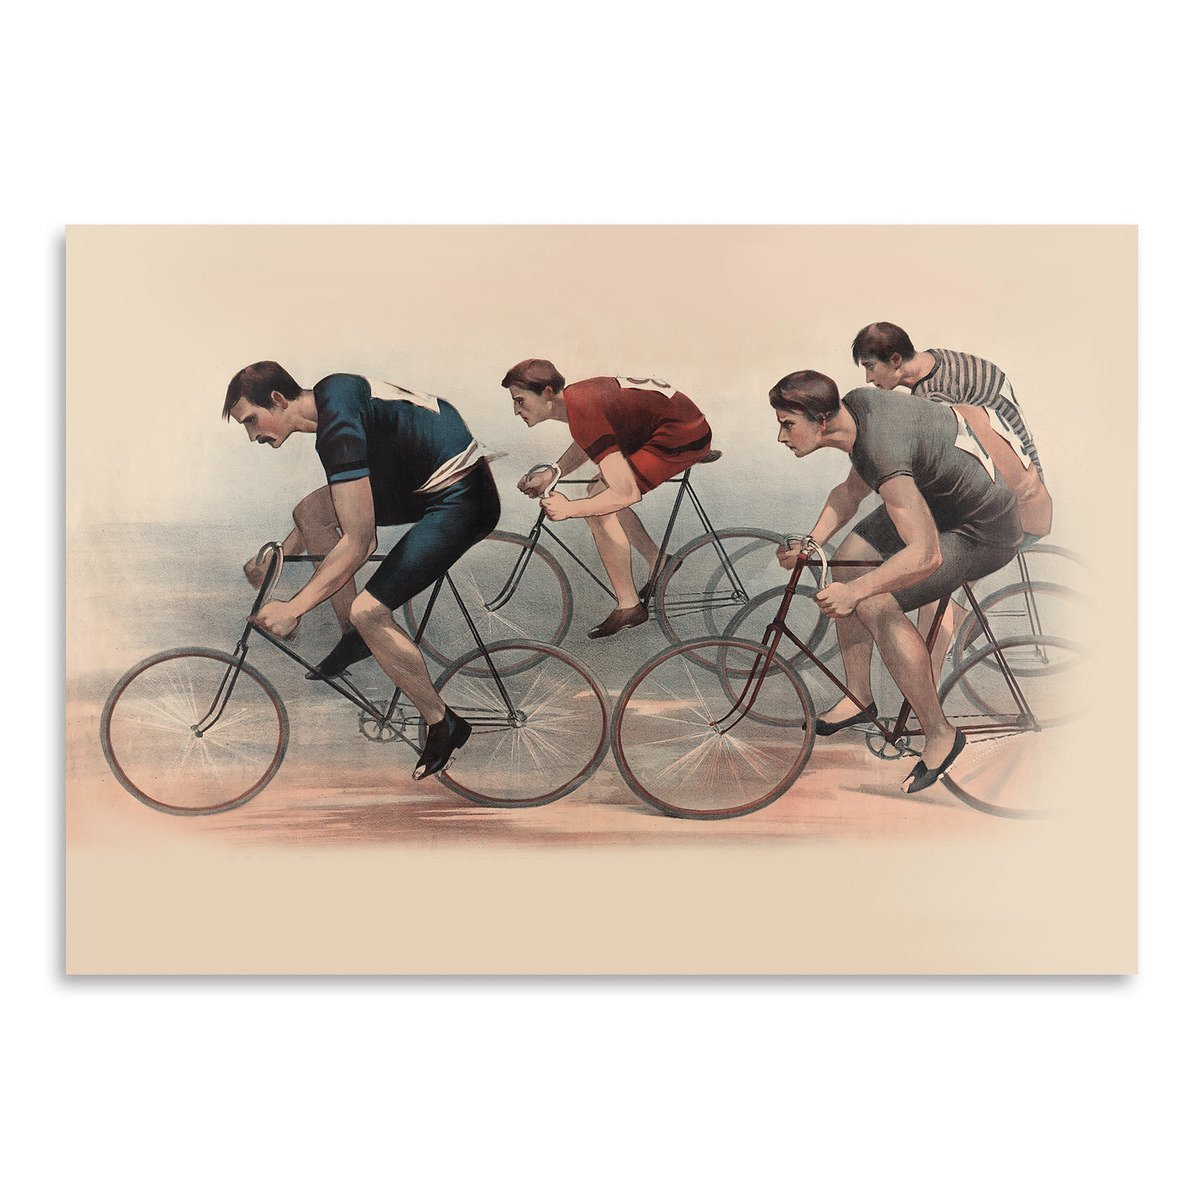 Bicycle Race by Found Image Press Art Print - Art Print - Americanflat